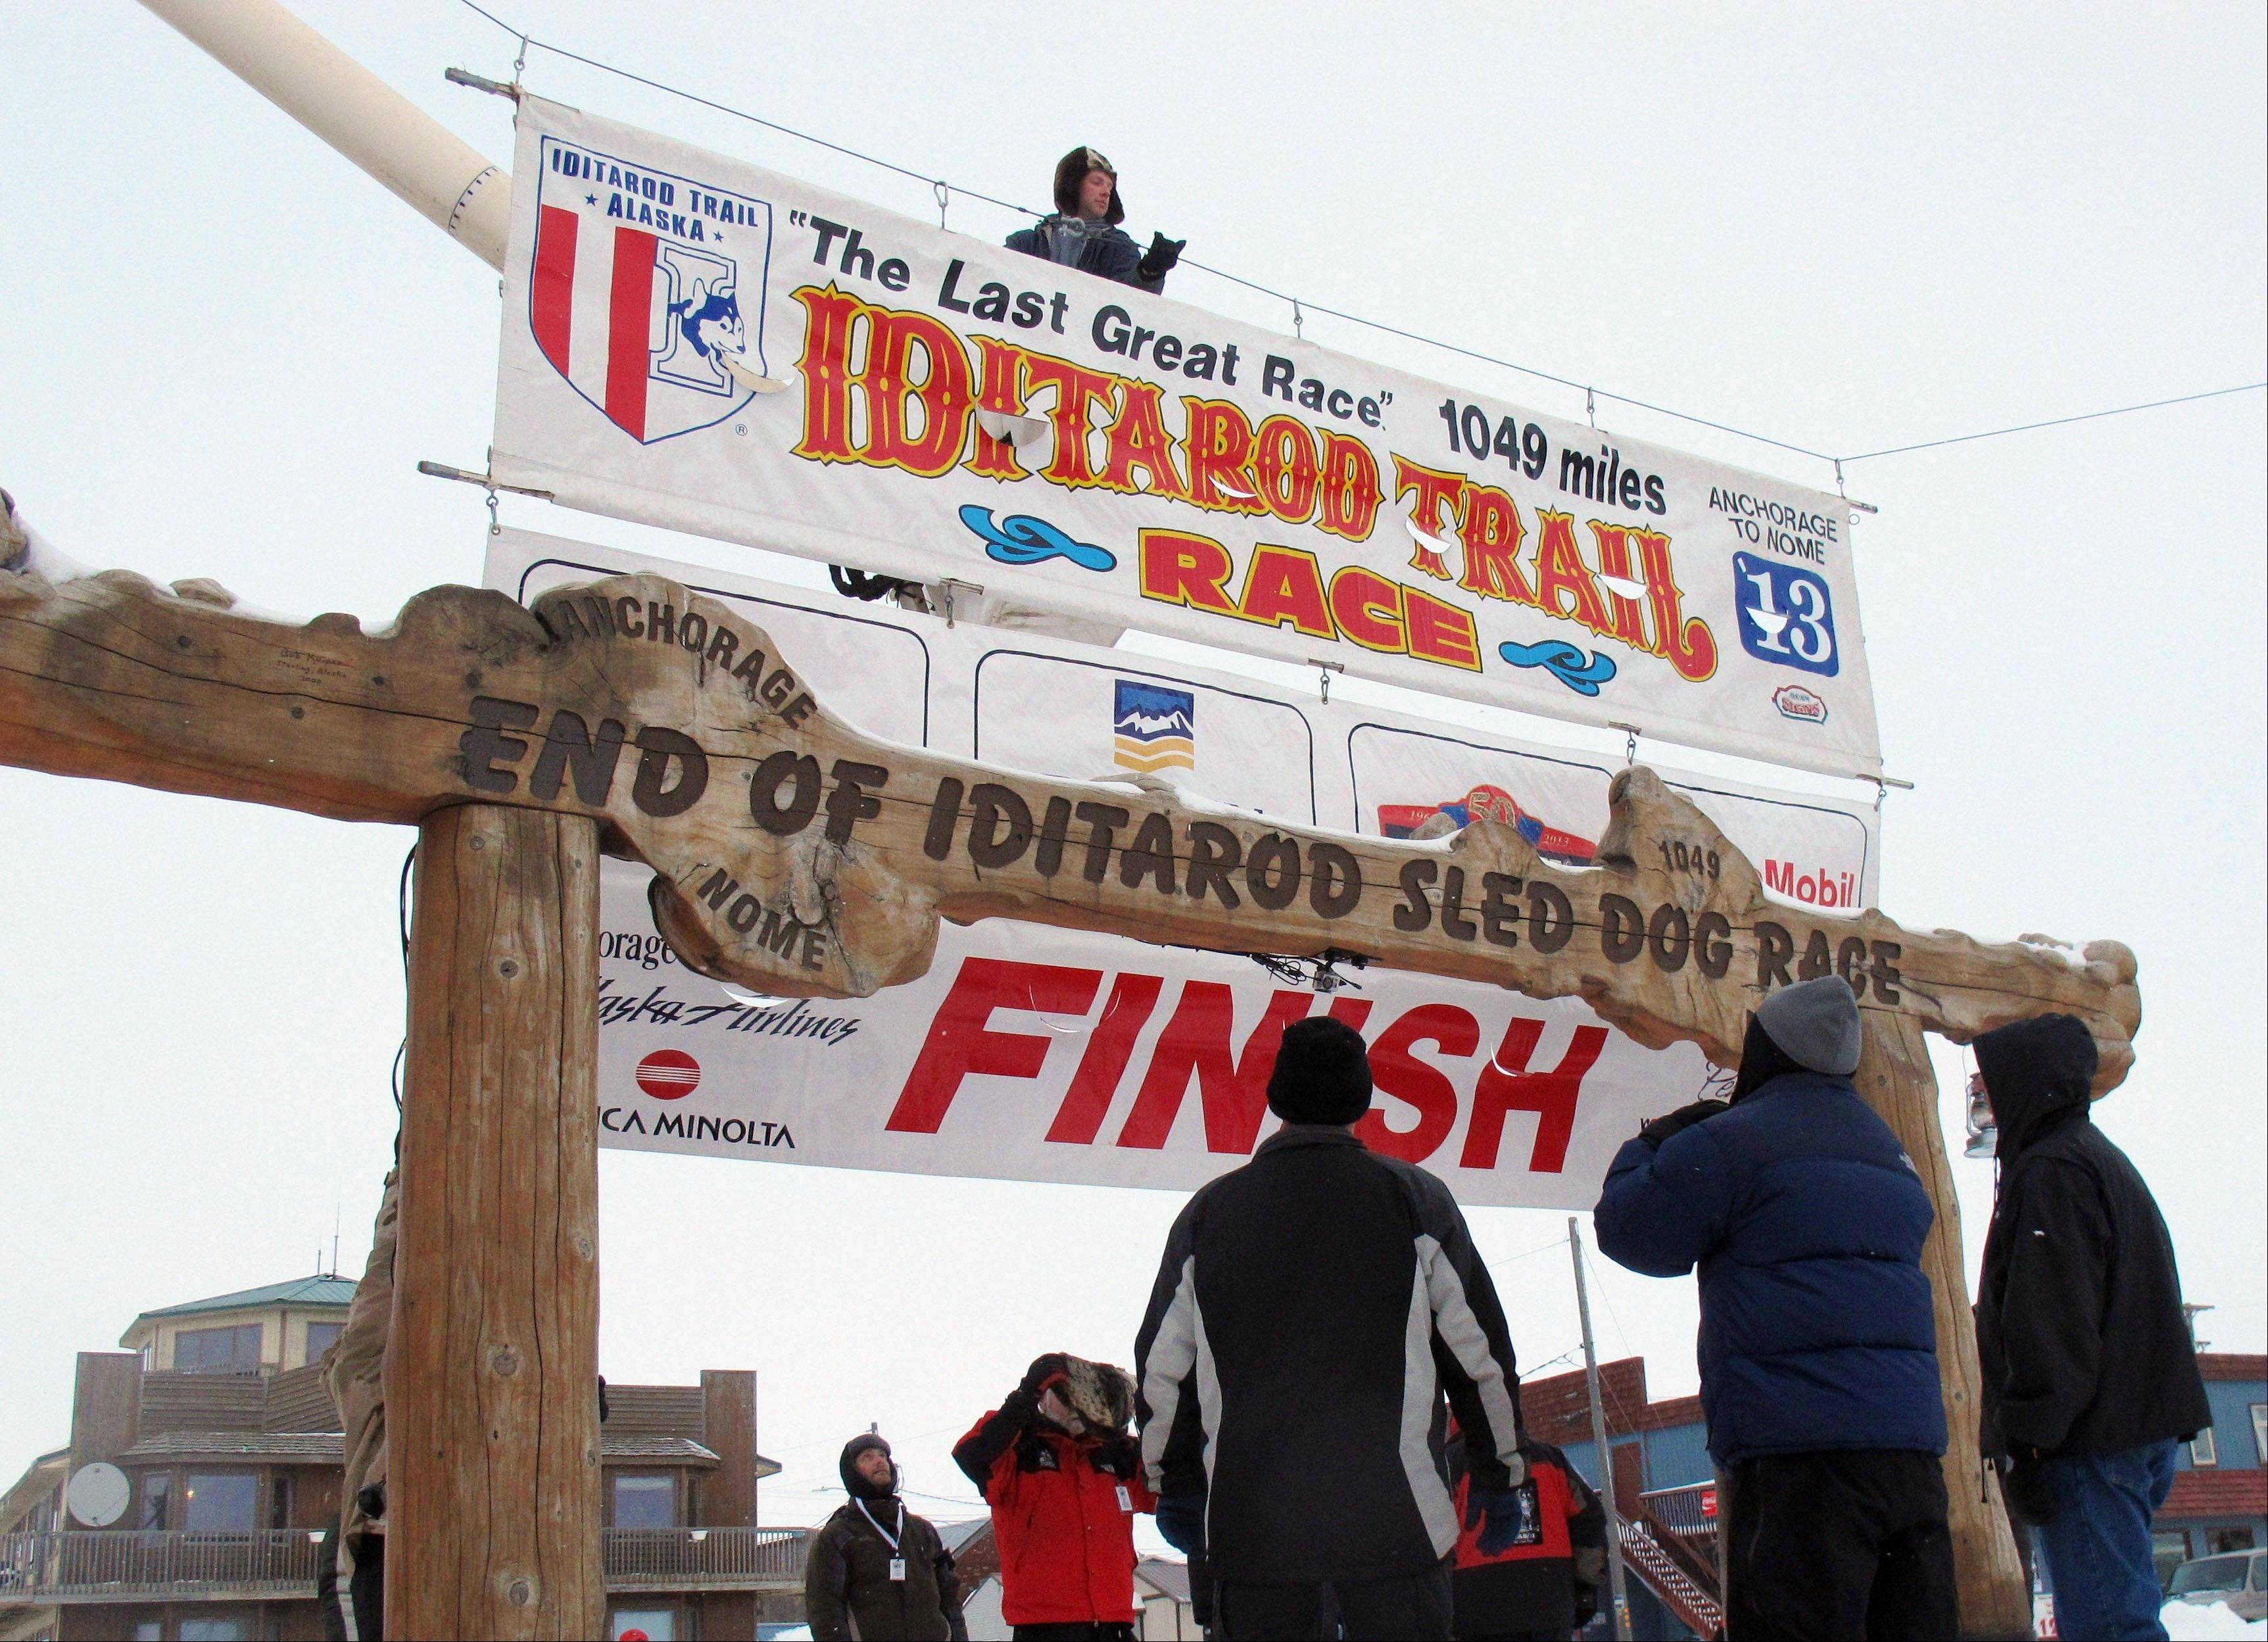 Volunteers hang a banner above the burled arch, which serves as the finish line for the 1,000-mile Iditarod Trail Sled Dog Race in Nome, Alaska.